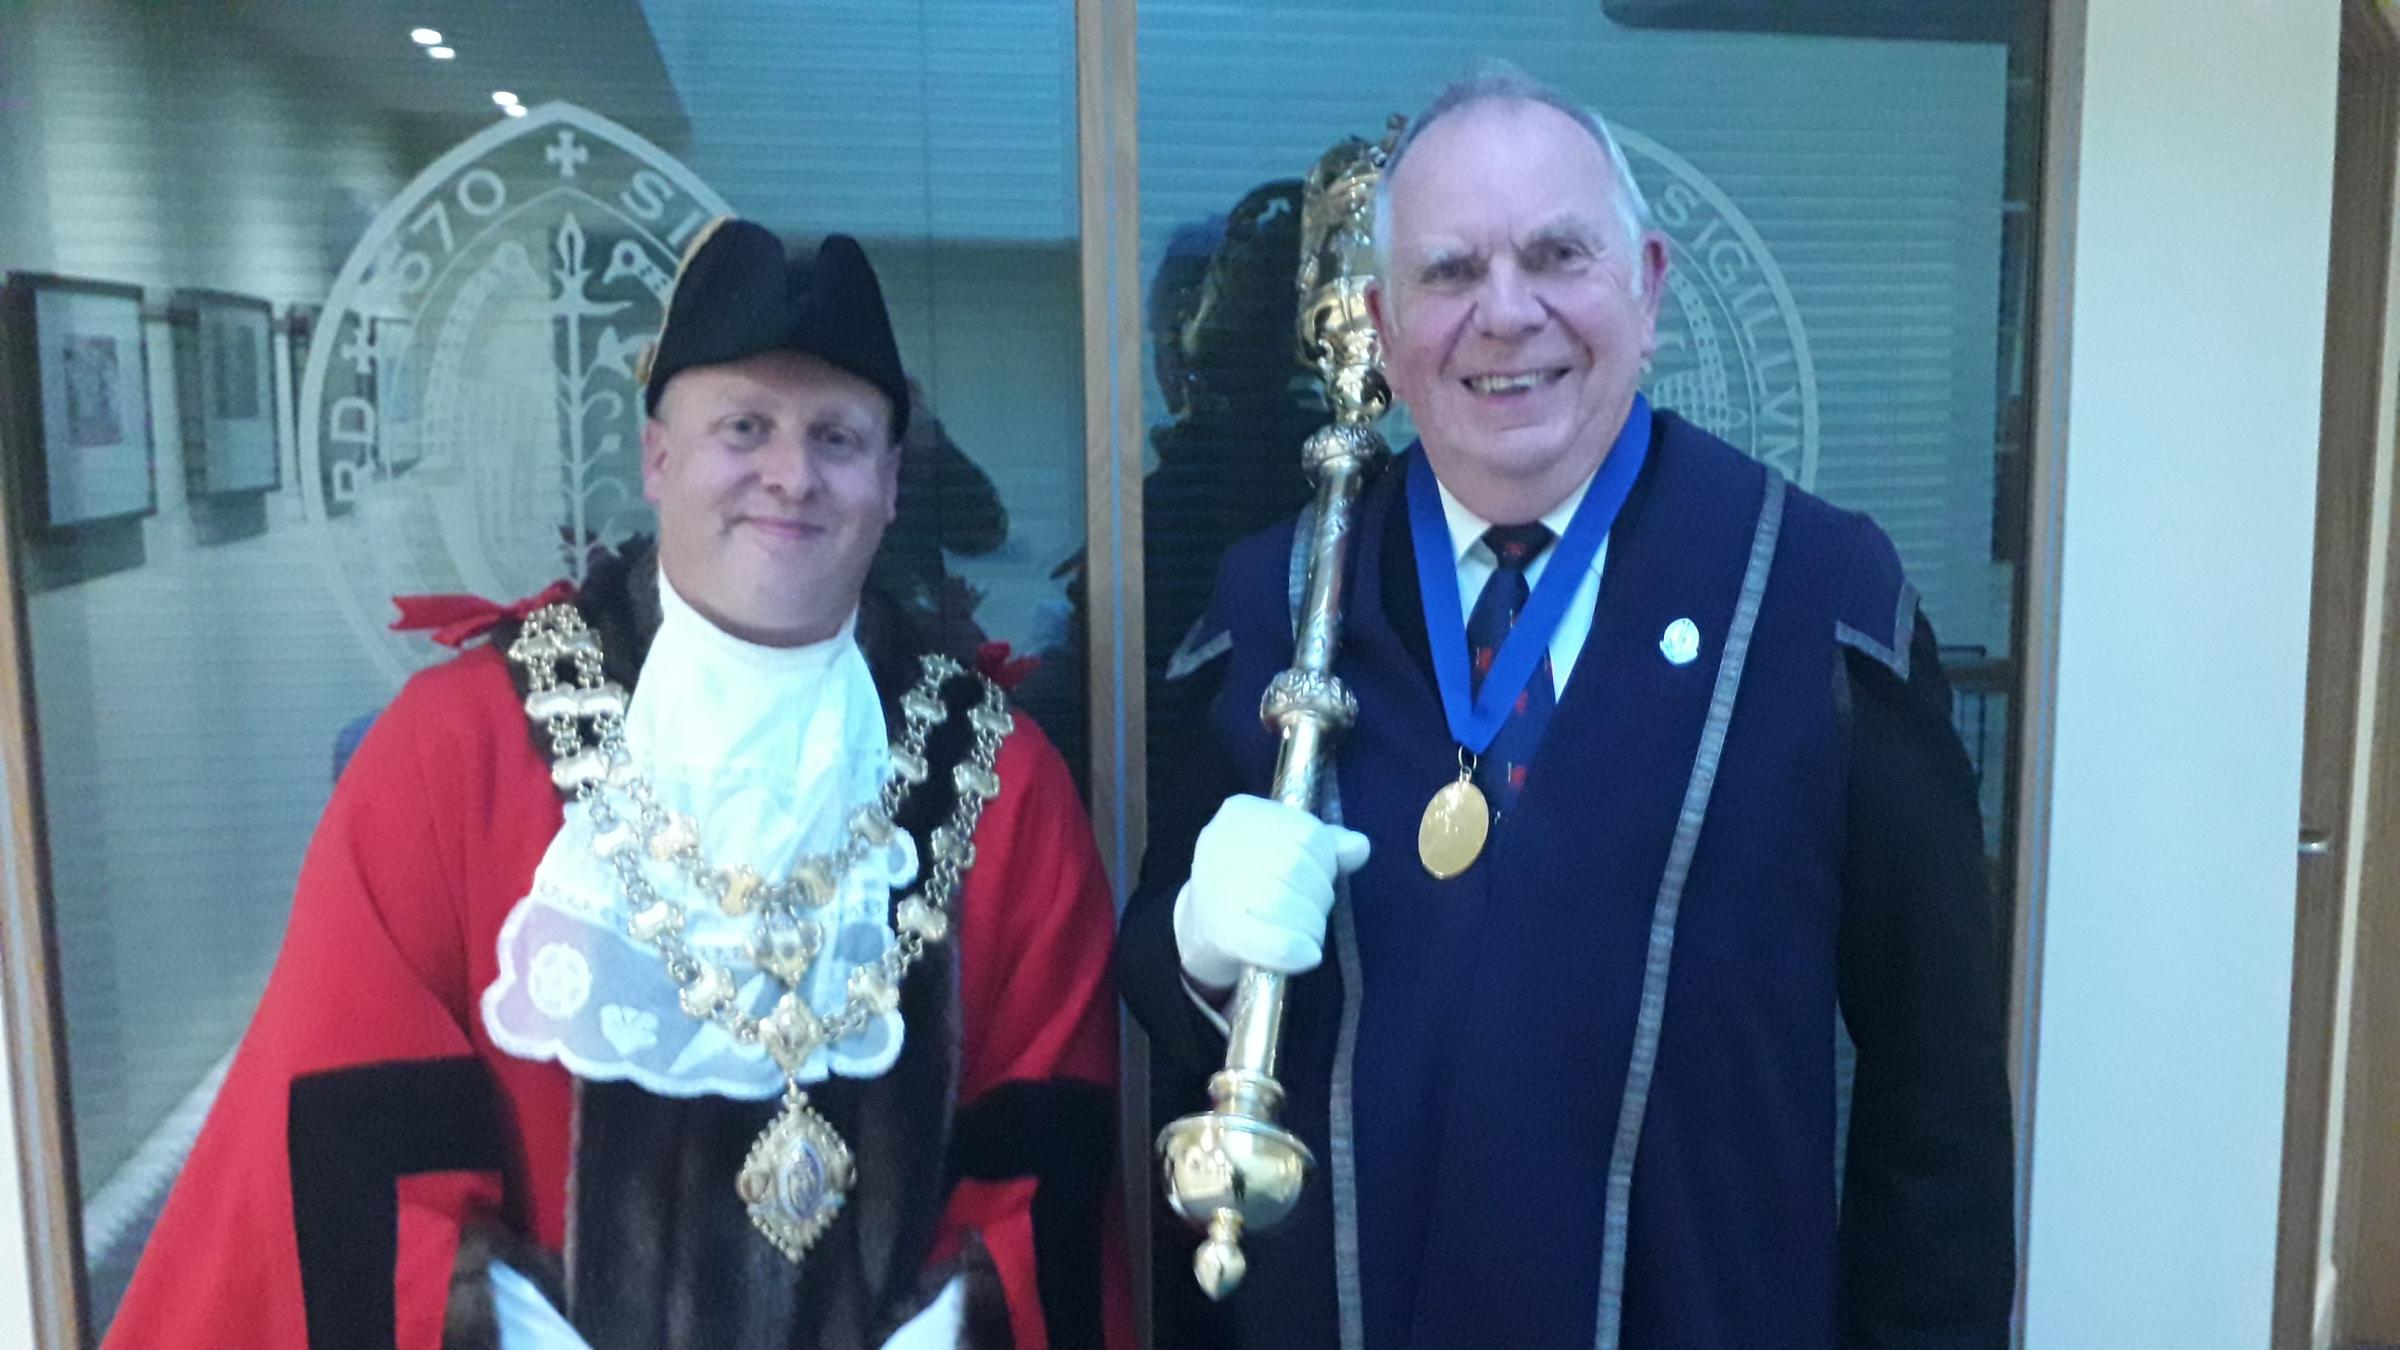 ELECTED: Cllr Jason Baker pictured in his official garb with Chard's macebearer Clive Sanders